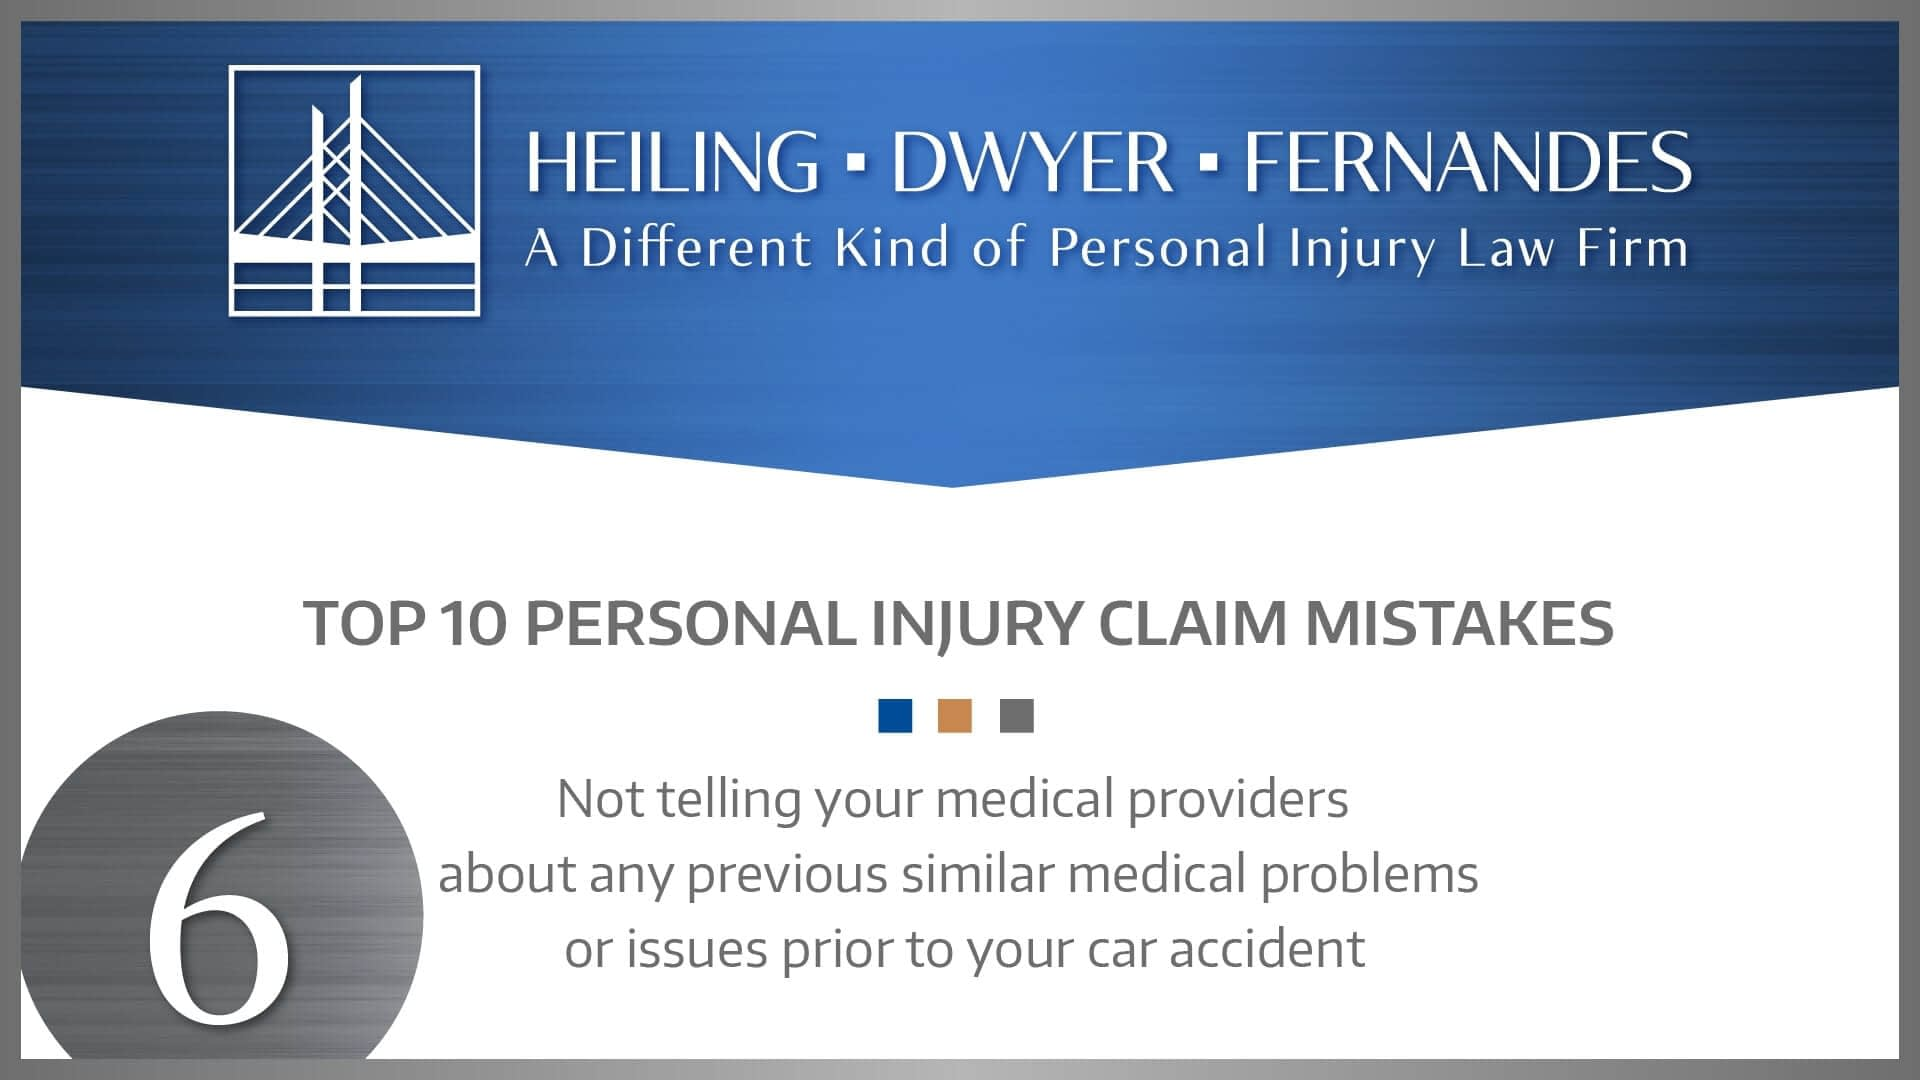 #6 MISTAKE: Not telling your medical providers about any previous similar medical problems or issues prior to your car accident